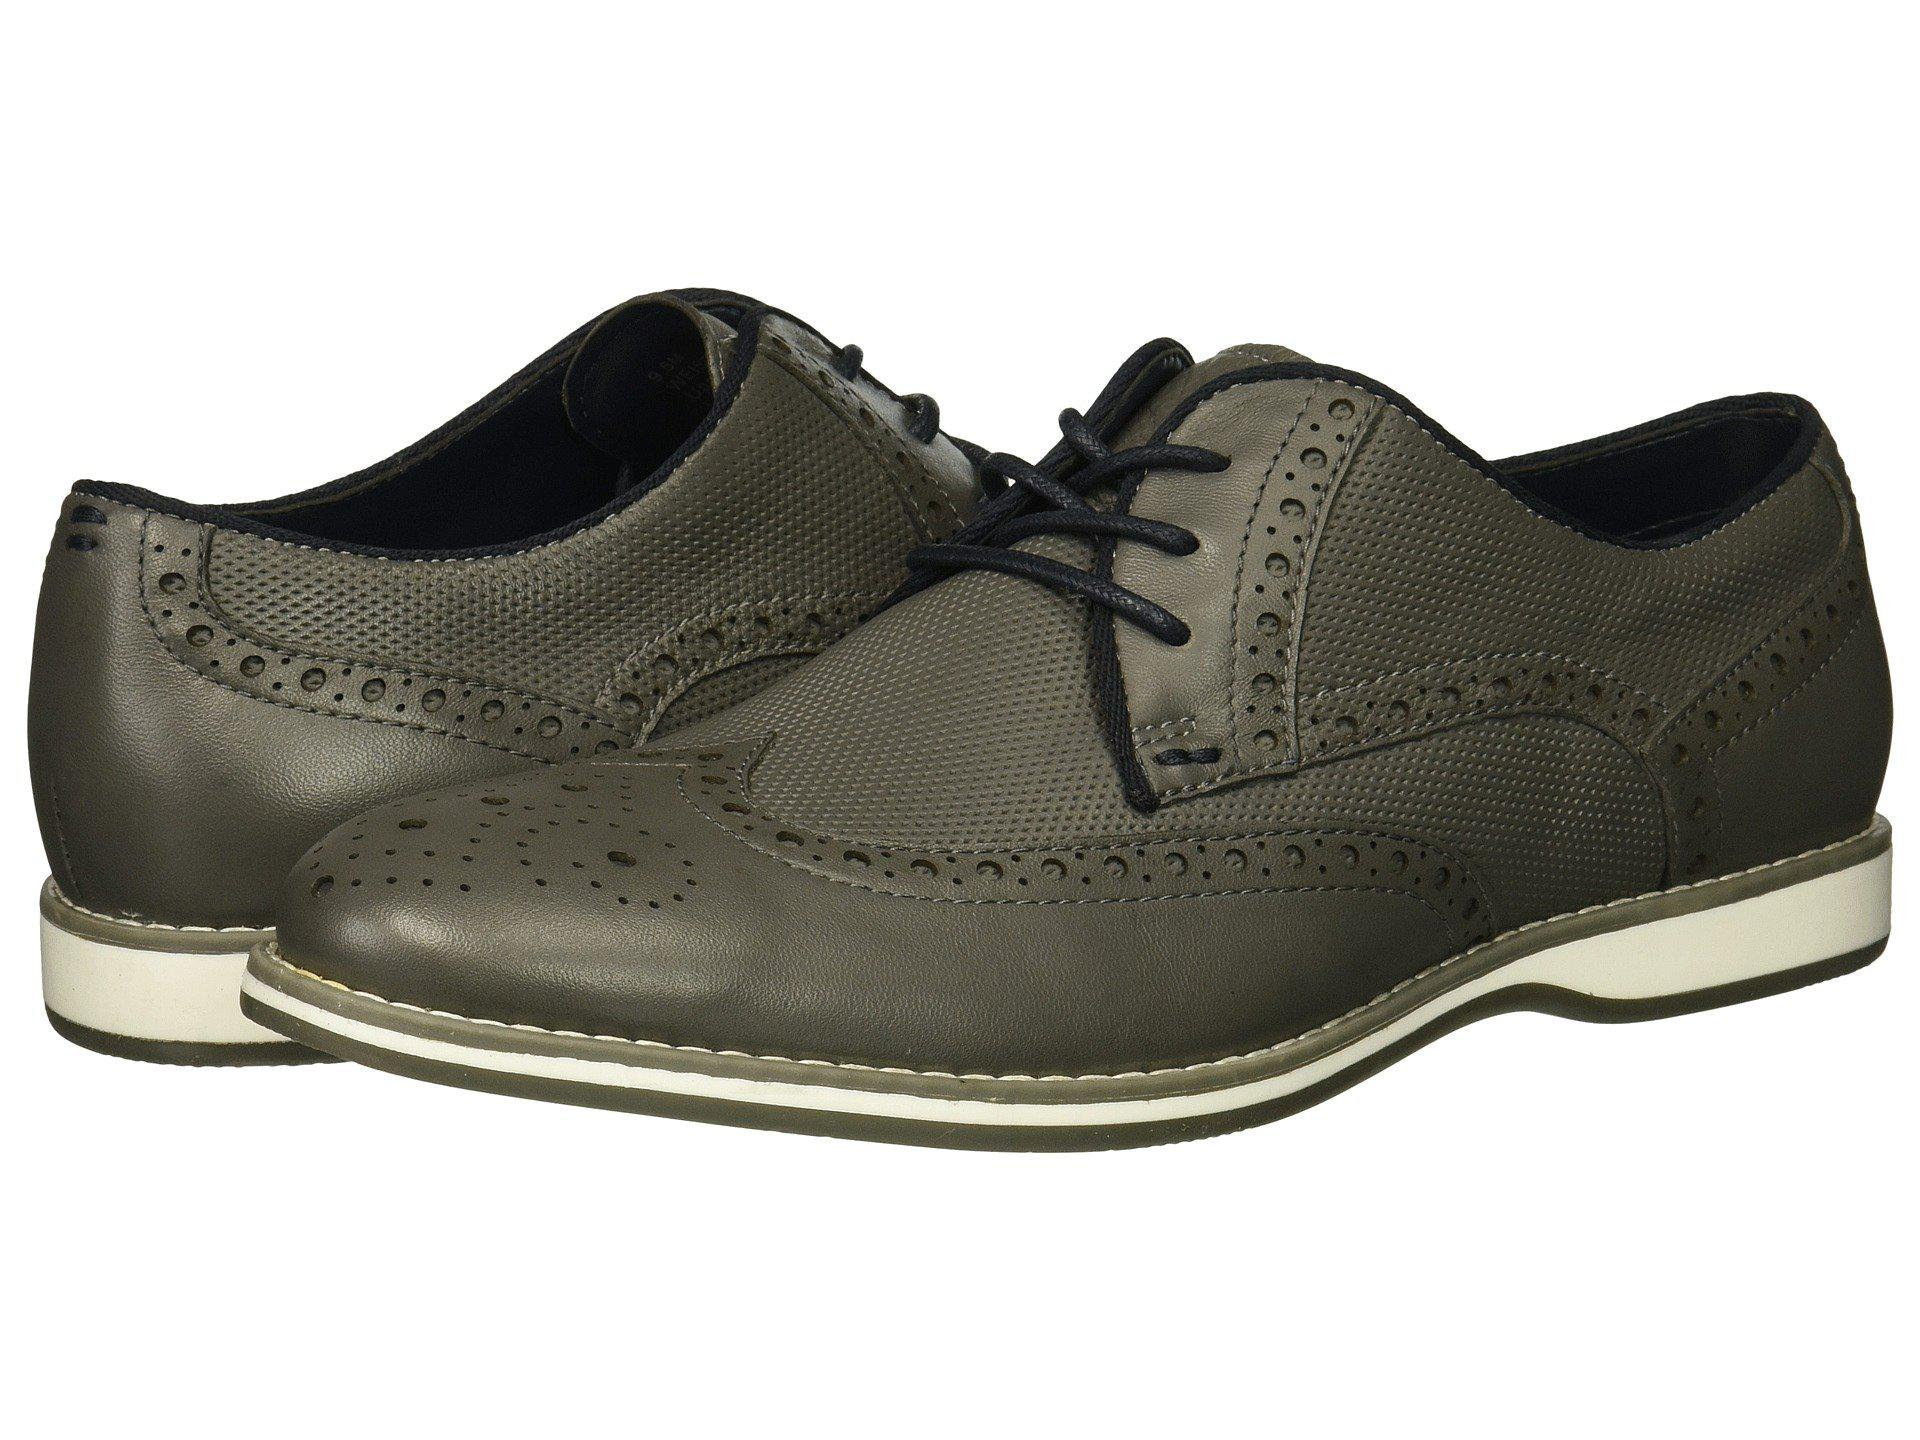 b90b701f3ead Lyst - Kenneth Cole Reaction Weiser Lace-up in Gray for Men - Save 8%